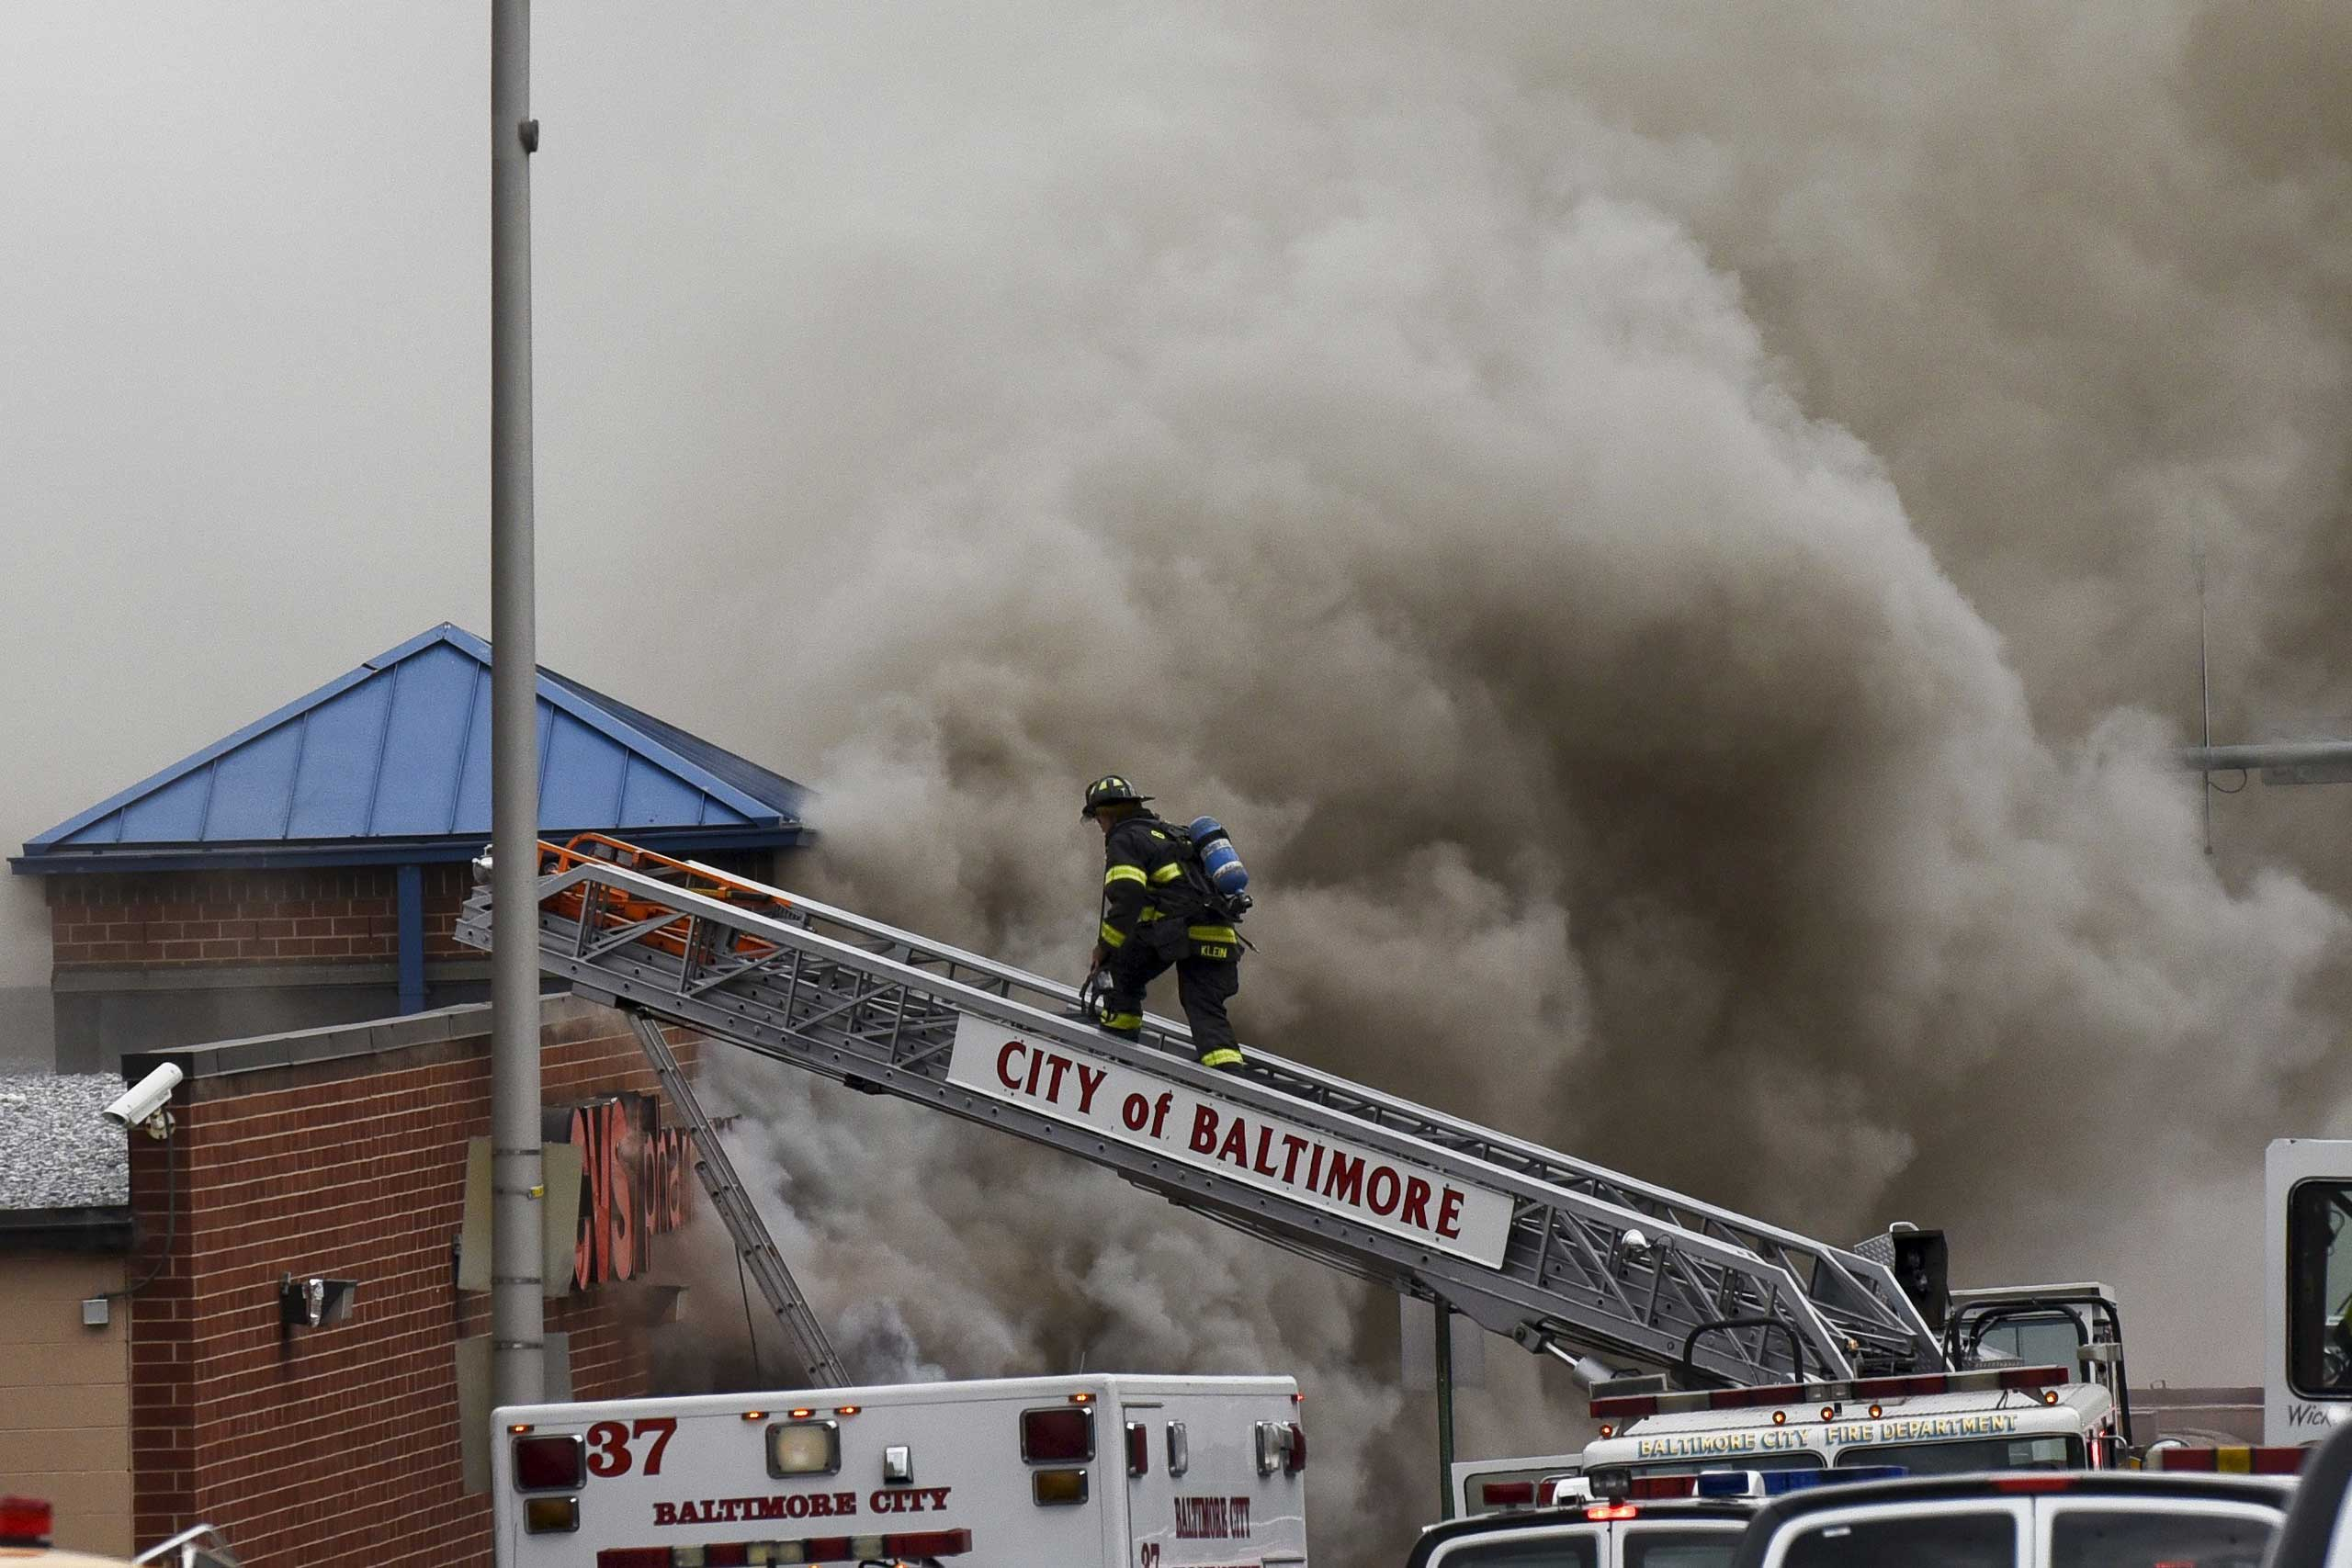 Fire fighters respond to a fire at a CVS pharmacy in Baltimore on April 27, 2015.